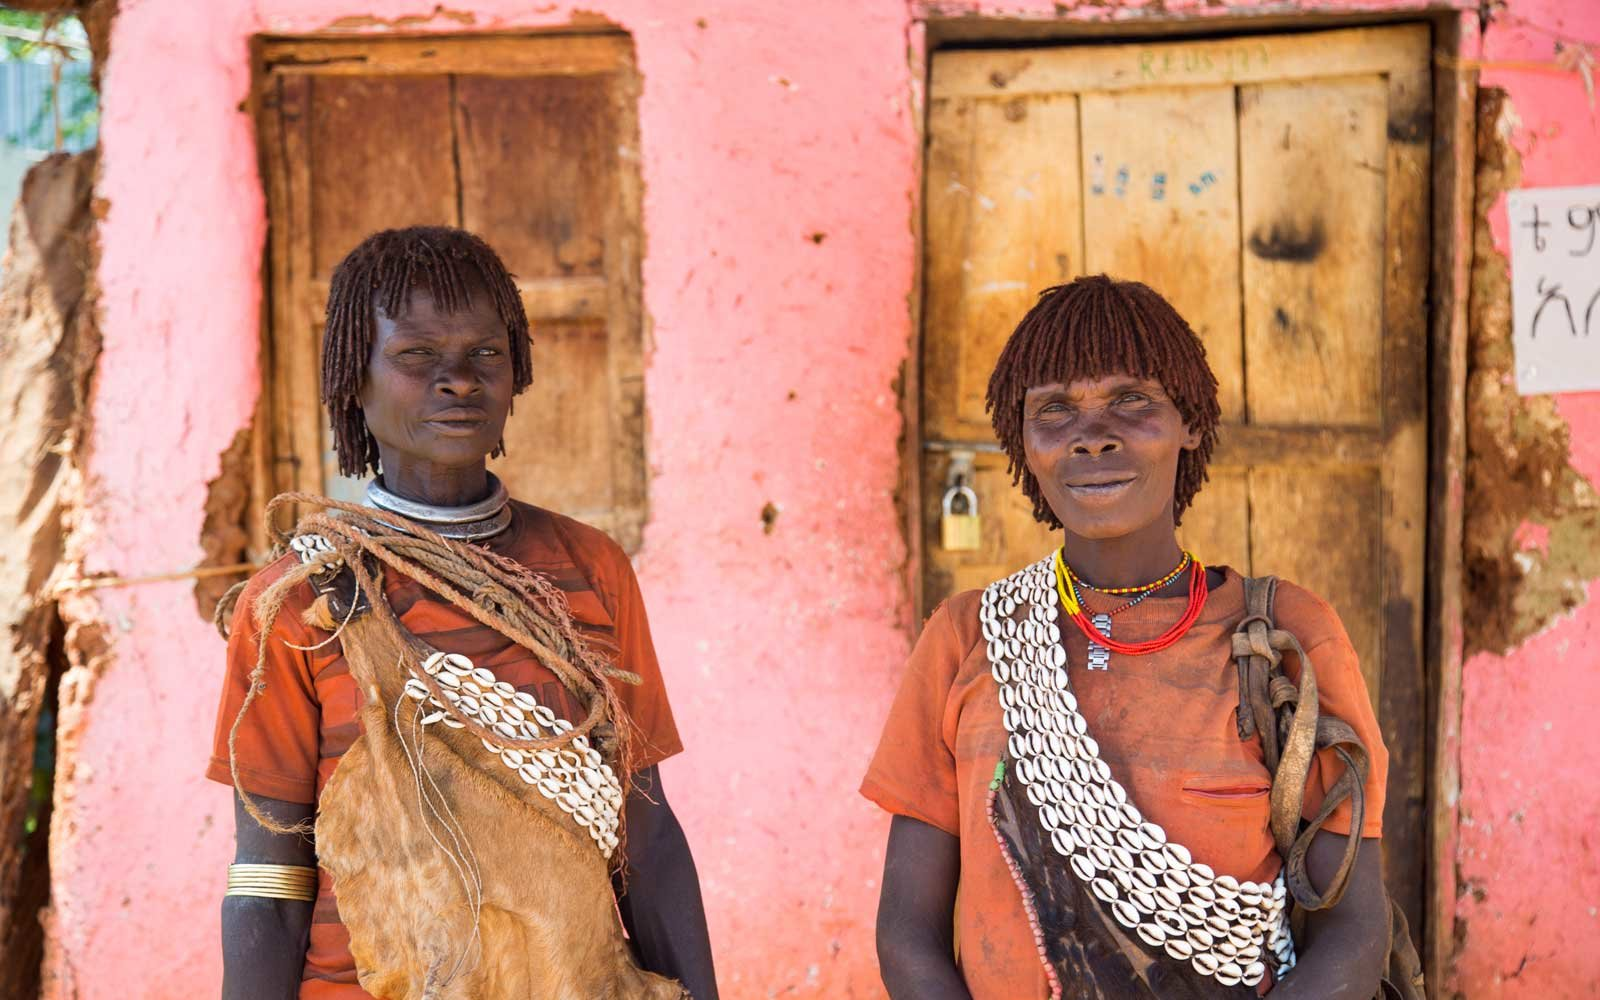 Bena tribeswomen in Key Afer